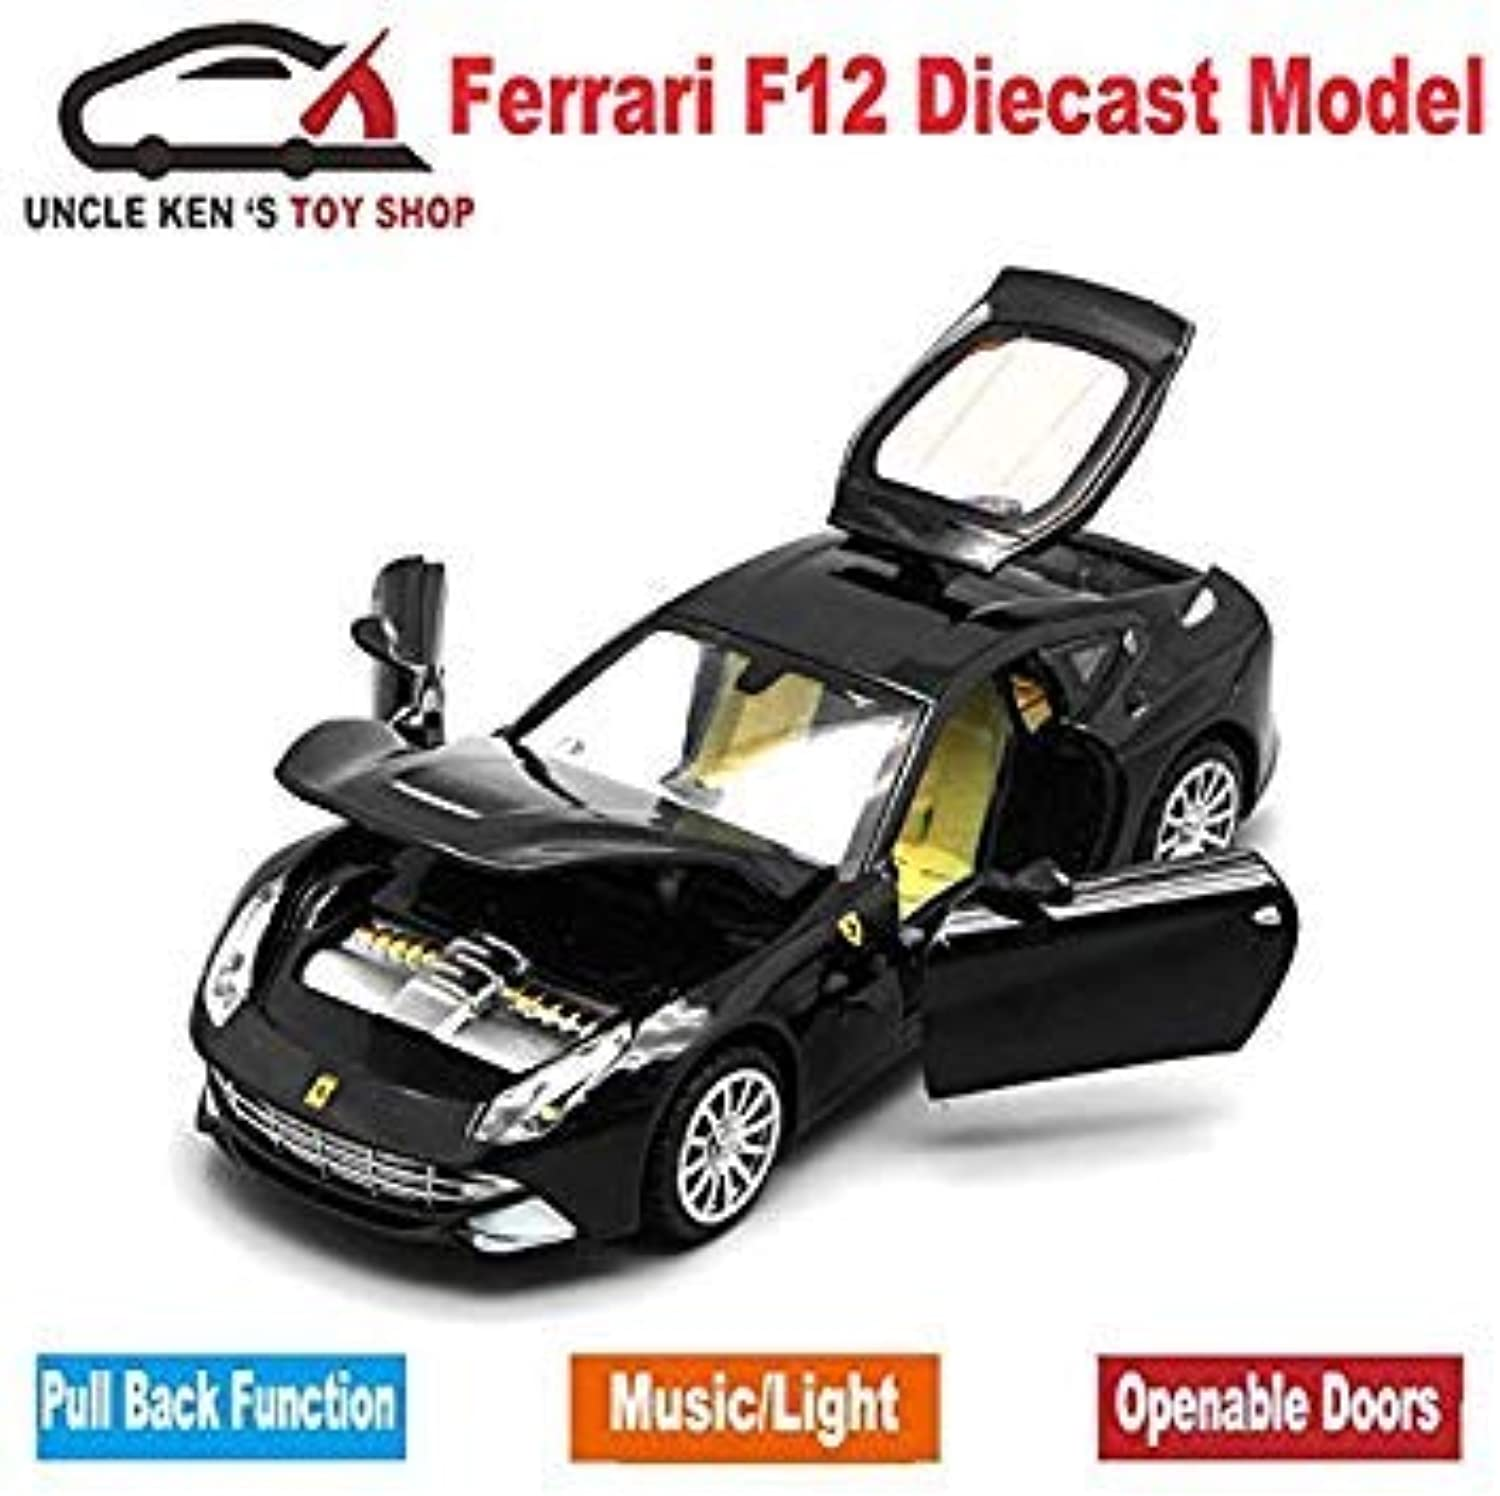 Diecast Scale Models Toys Sport Sport Sport Cars, Collection Vehicle for Boys with Different colors Black c7a095